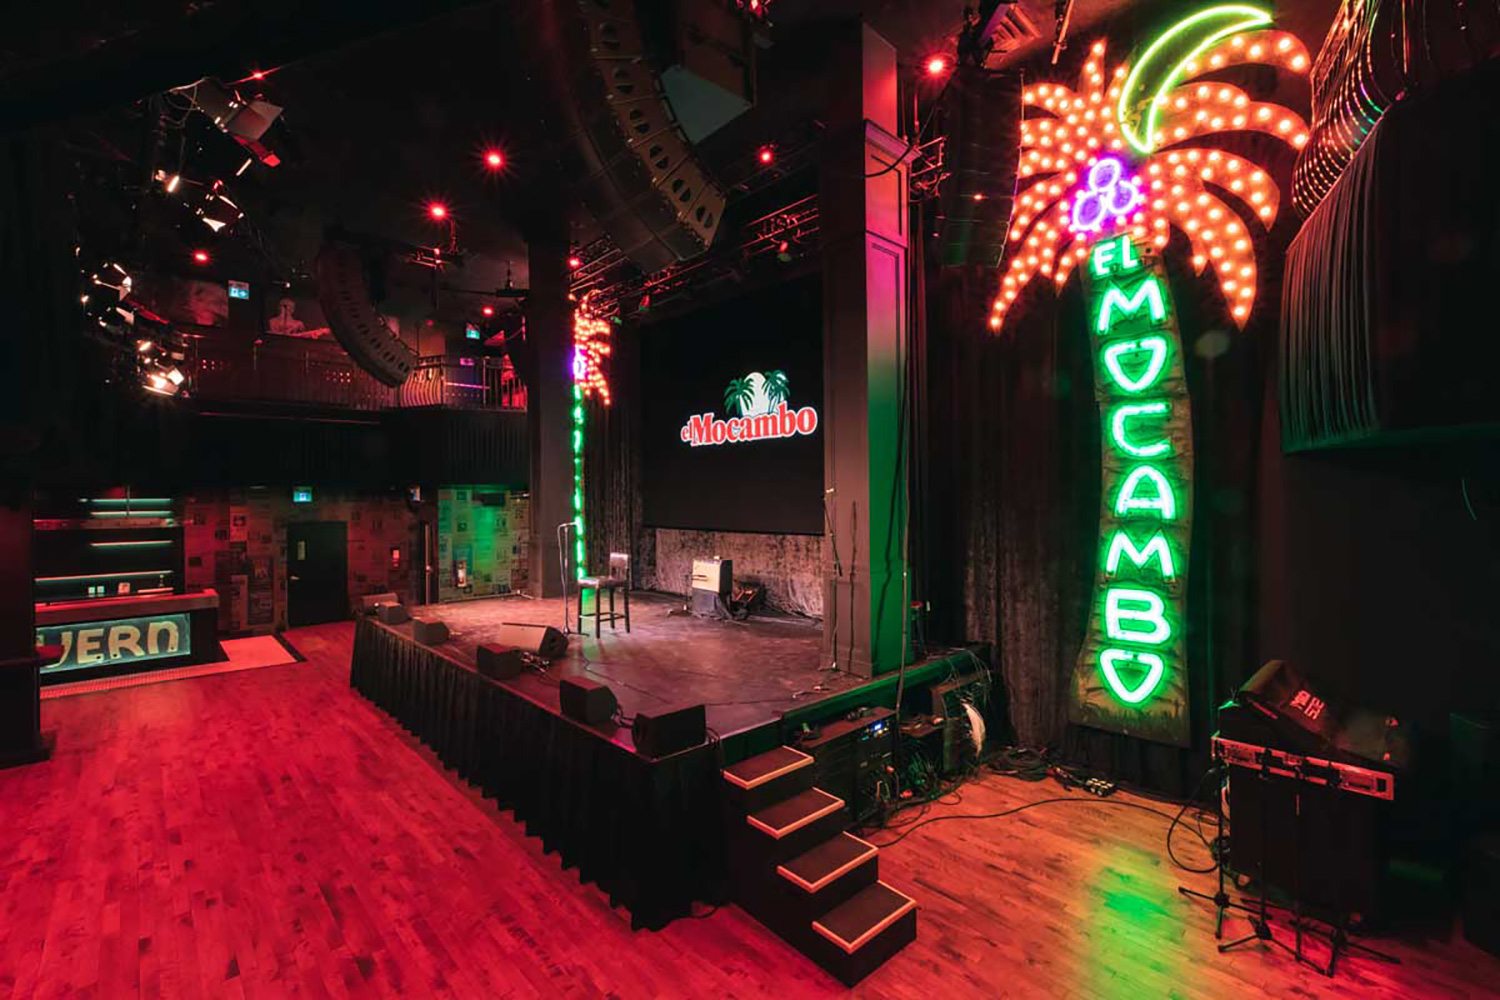 Toronto's legendary El Mocambo was acquired in 2014 by Michael Wekerle, who commissioned WSDG to design and co-supervise the renovation of the club into a live performance/recording and streaming space. Control Room. El Mo Room.